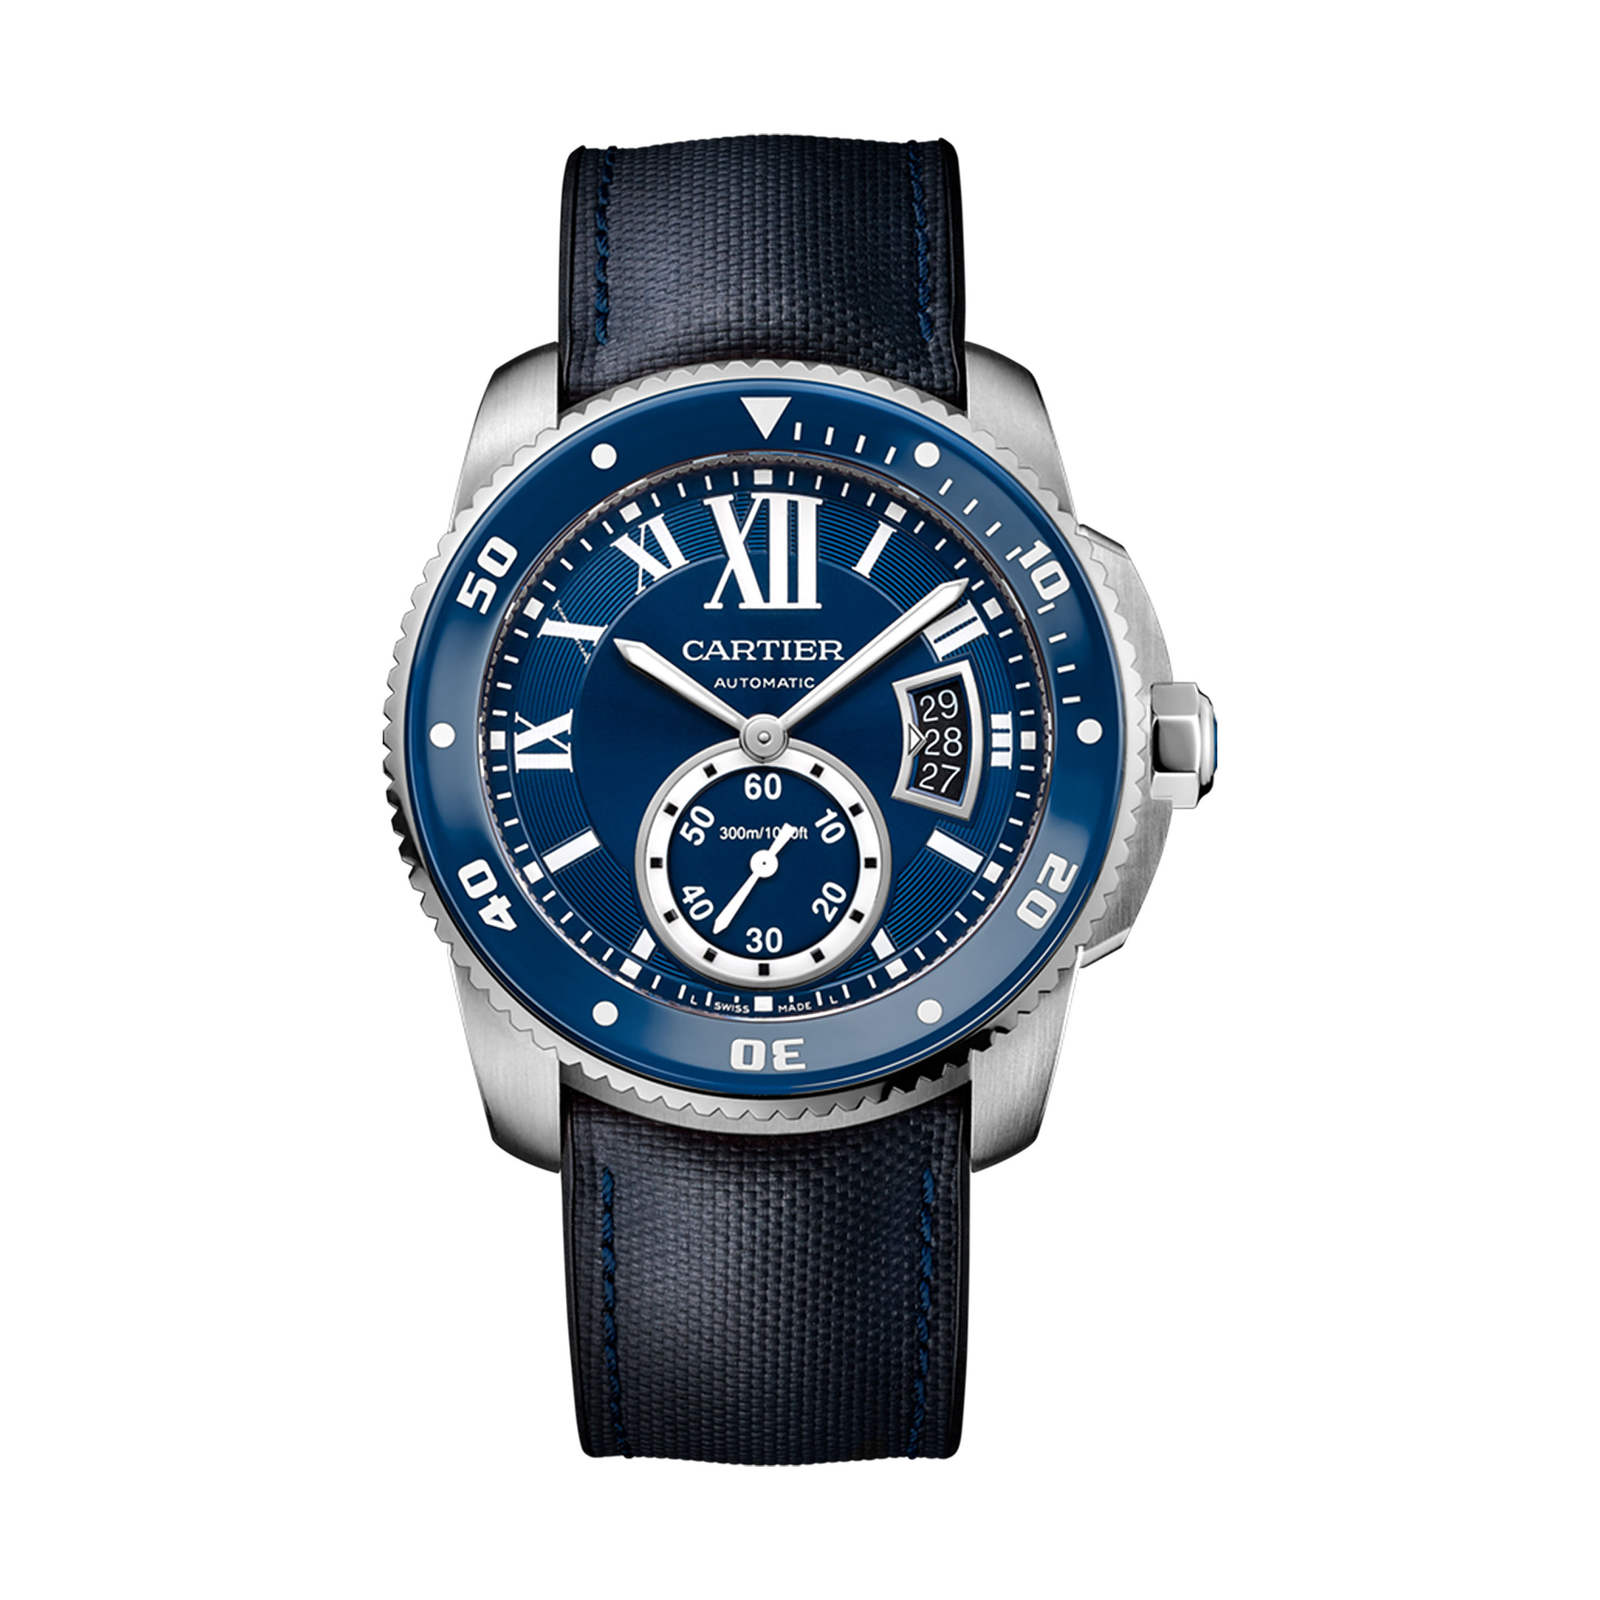 Calibre de Cartier Diver blue watch, 42 mm